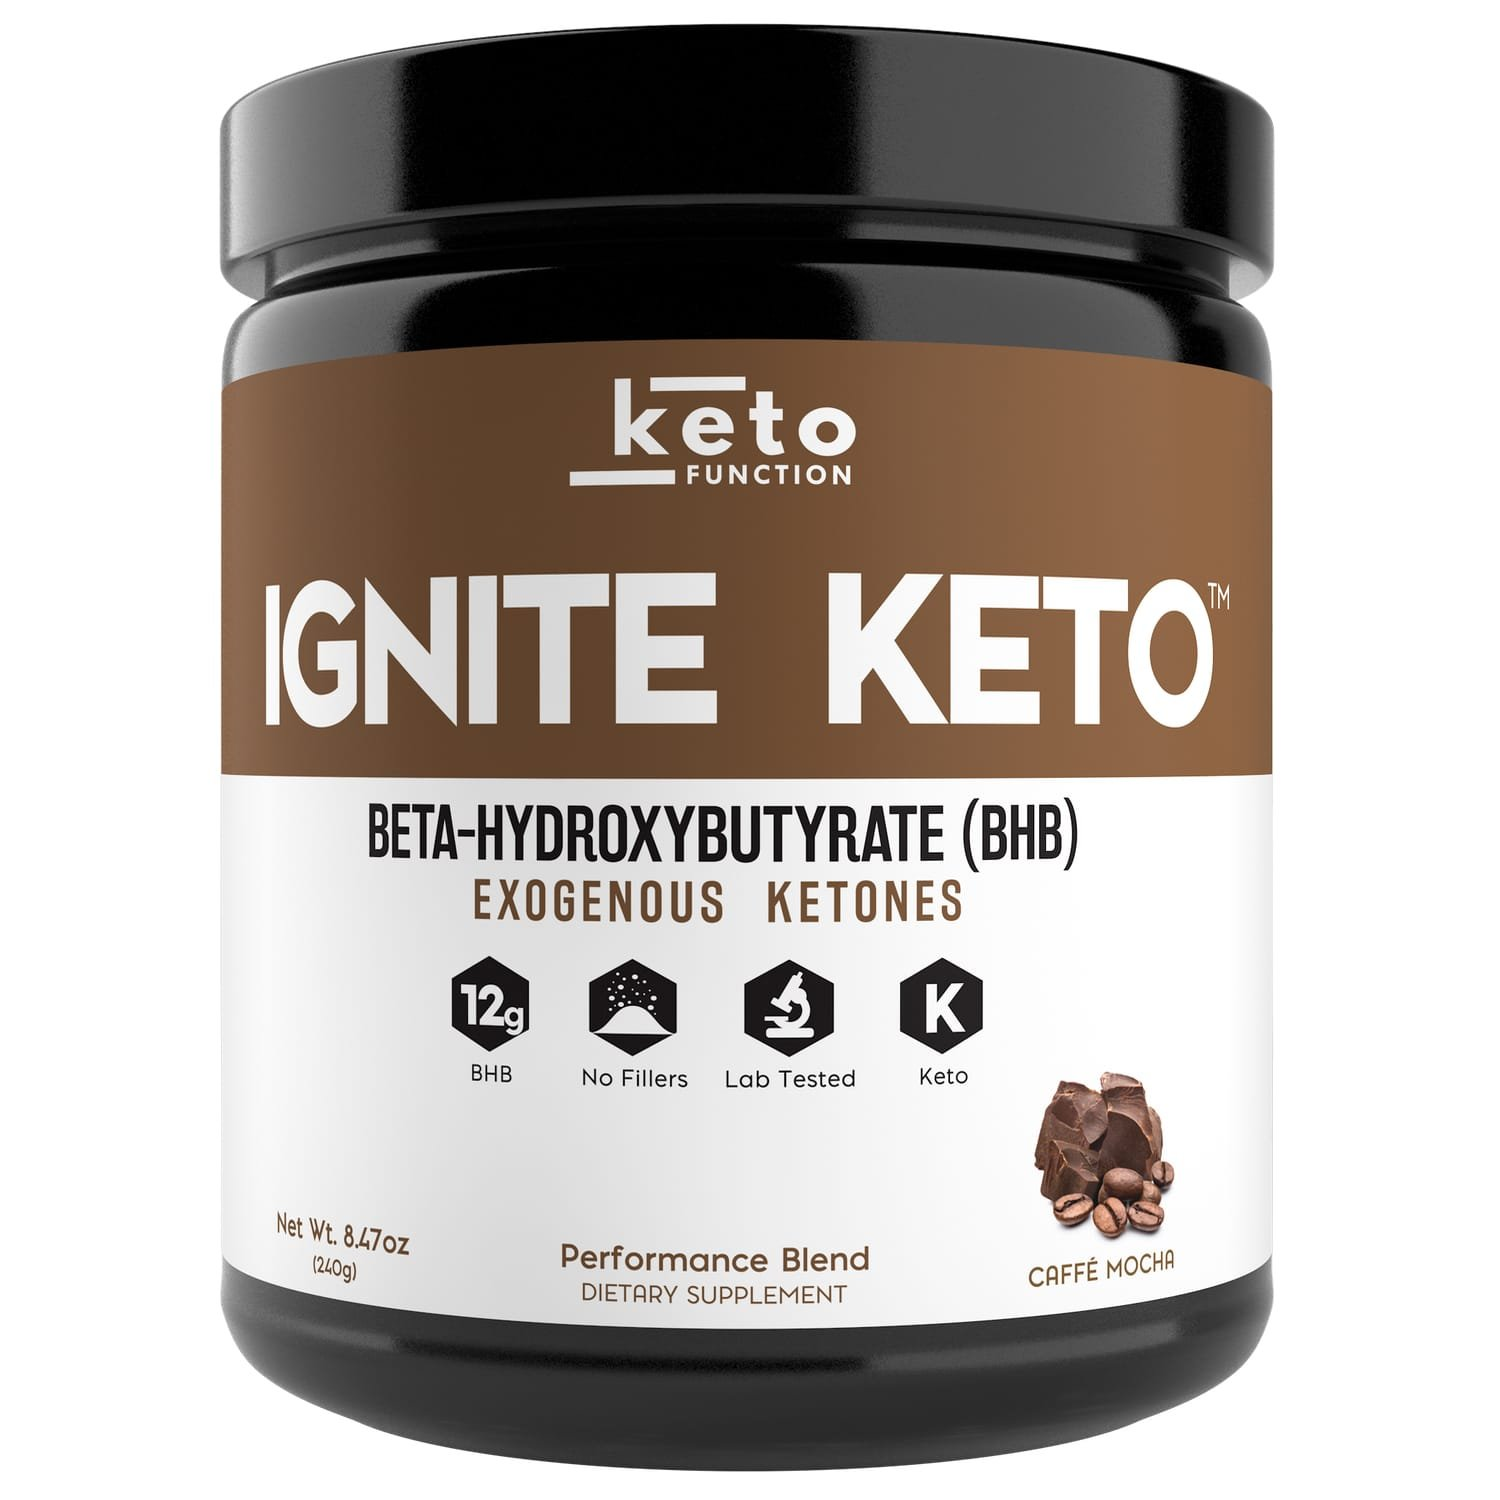 IGNITE KETO BHB Salts – Exogenous Ketones Supplement with 12g Pure BHB – IGNITE Ketosis, Energy, Focus and Fat Burn – Fuel a Ketogenic Diet Mocha